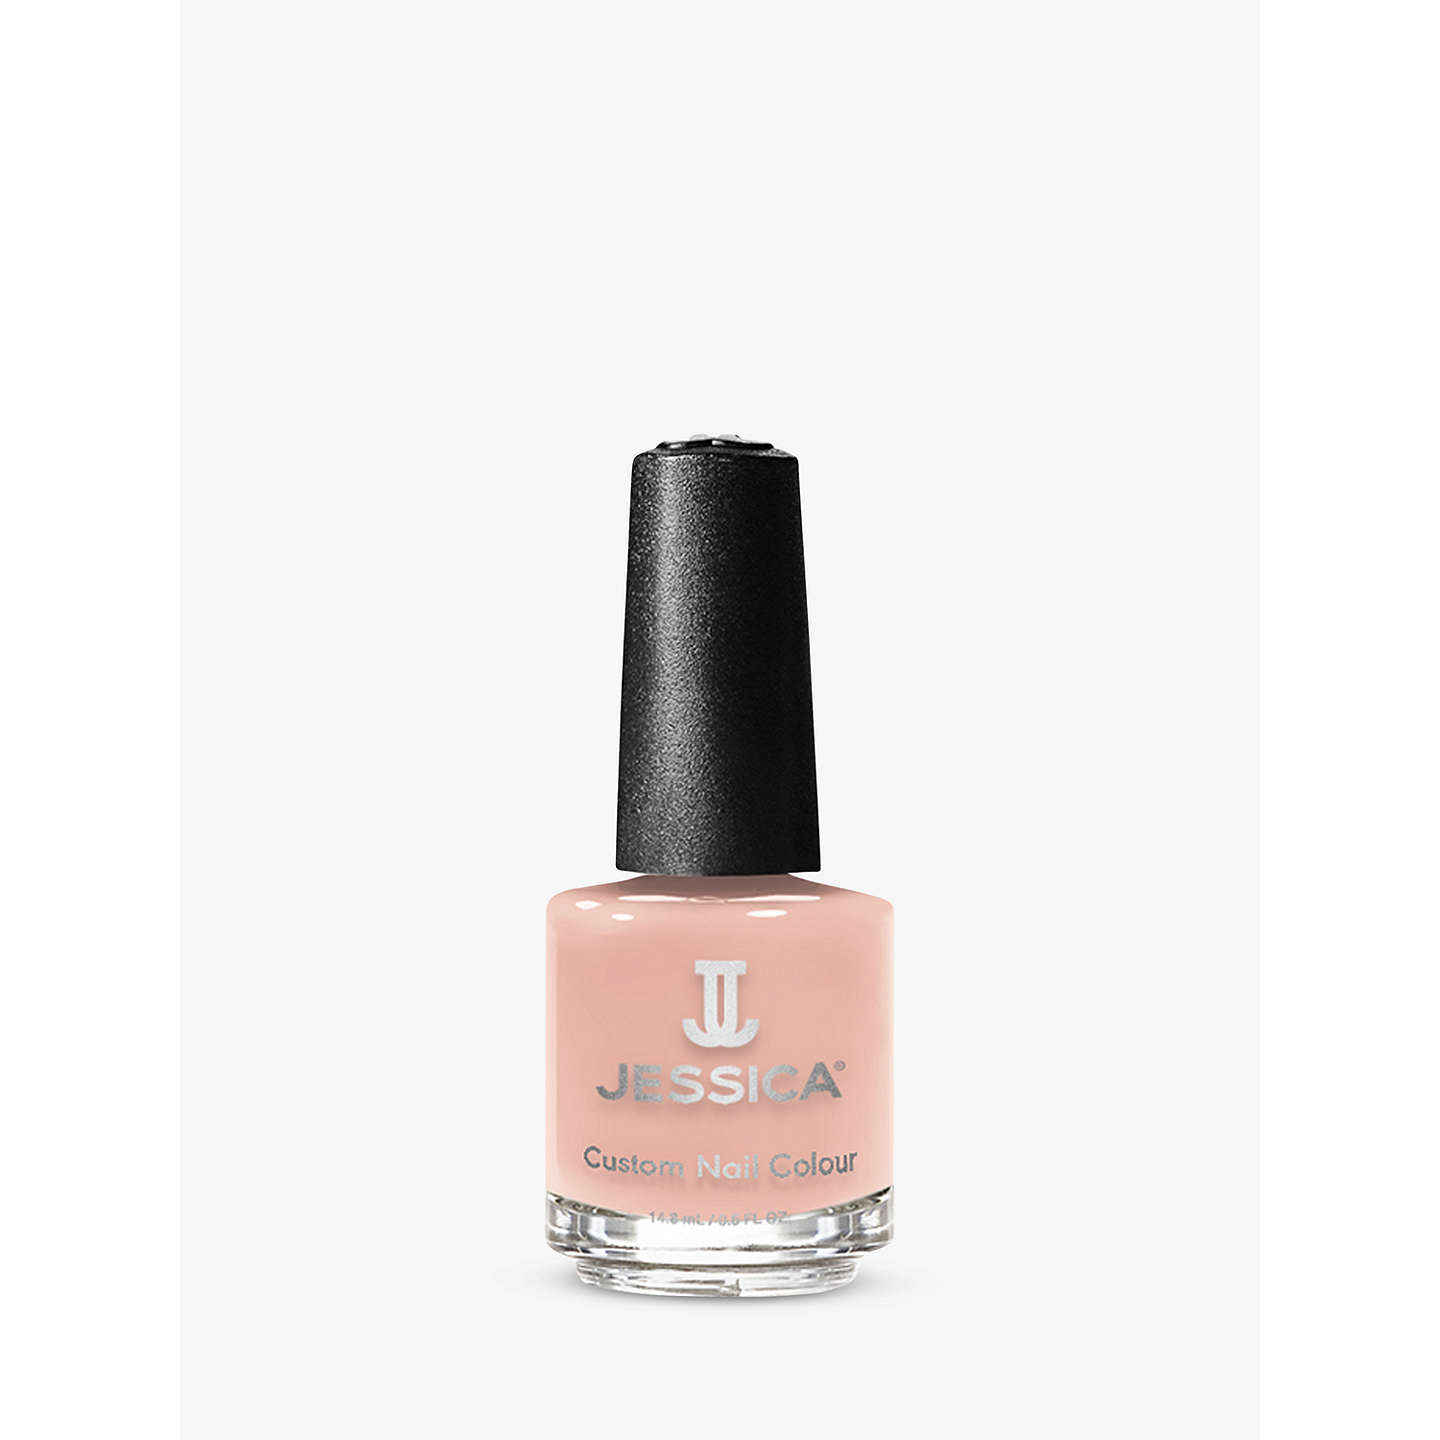 BuyJessica Custom Nail Colour - Nudes & Whites, Sweet Tooth Online at johnlewis.com